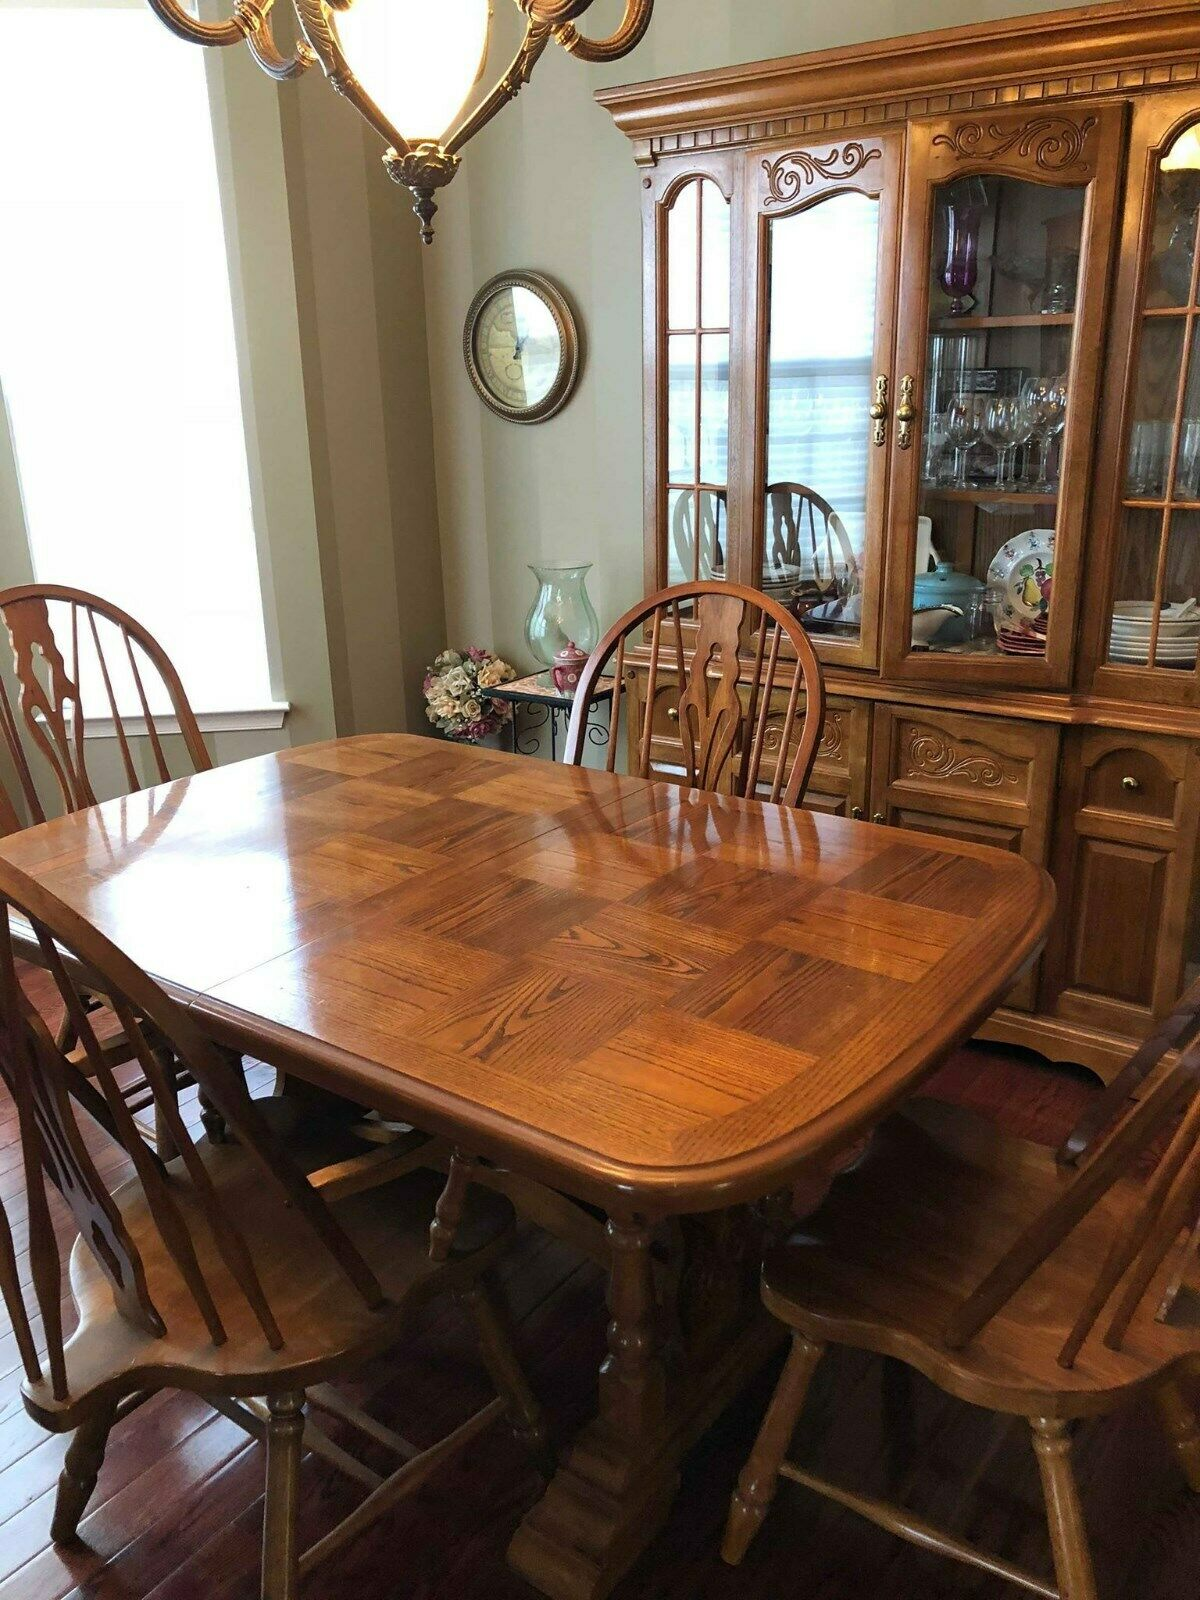 10 piece Formal Dining Room Set: Oak table 6 chairs China Cabinet Extensions